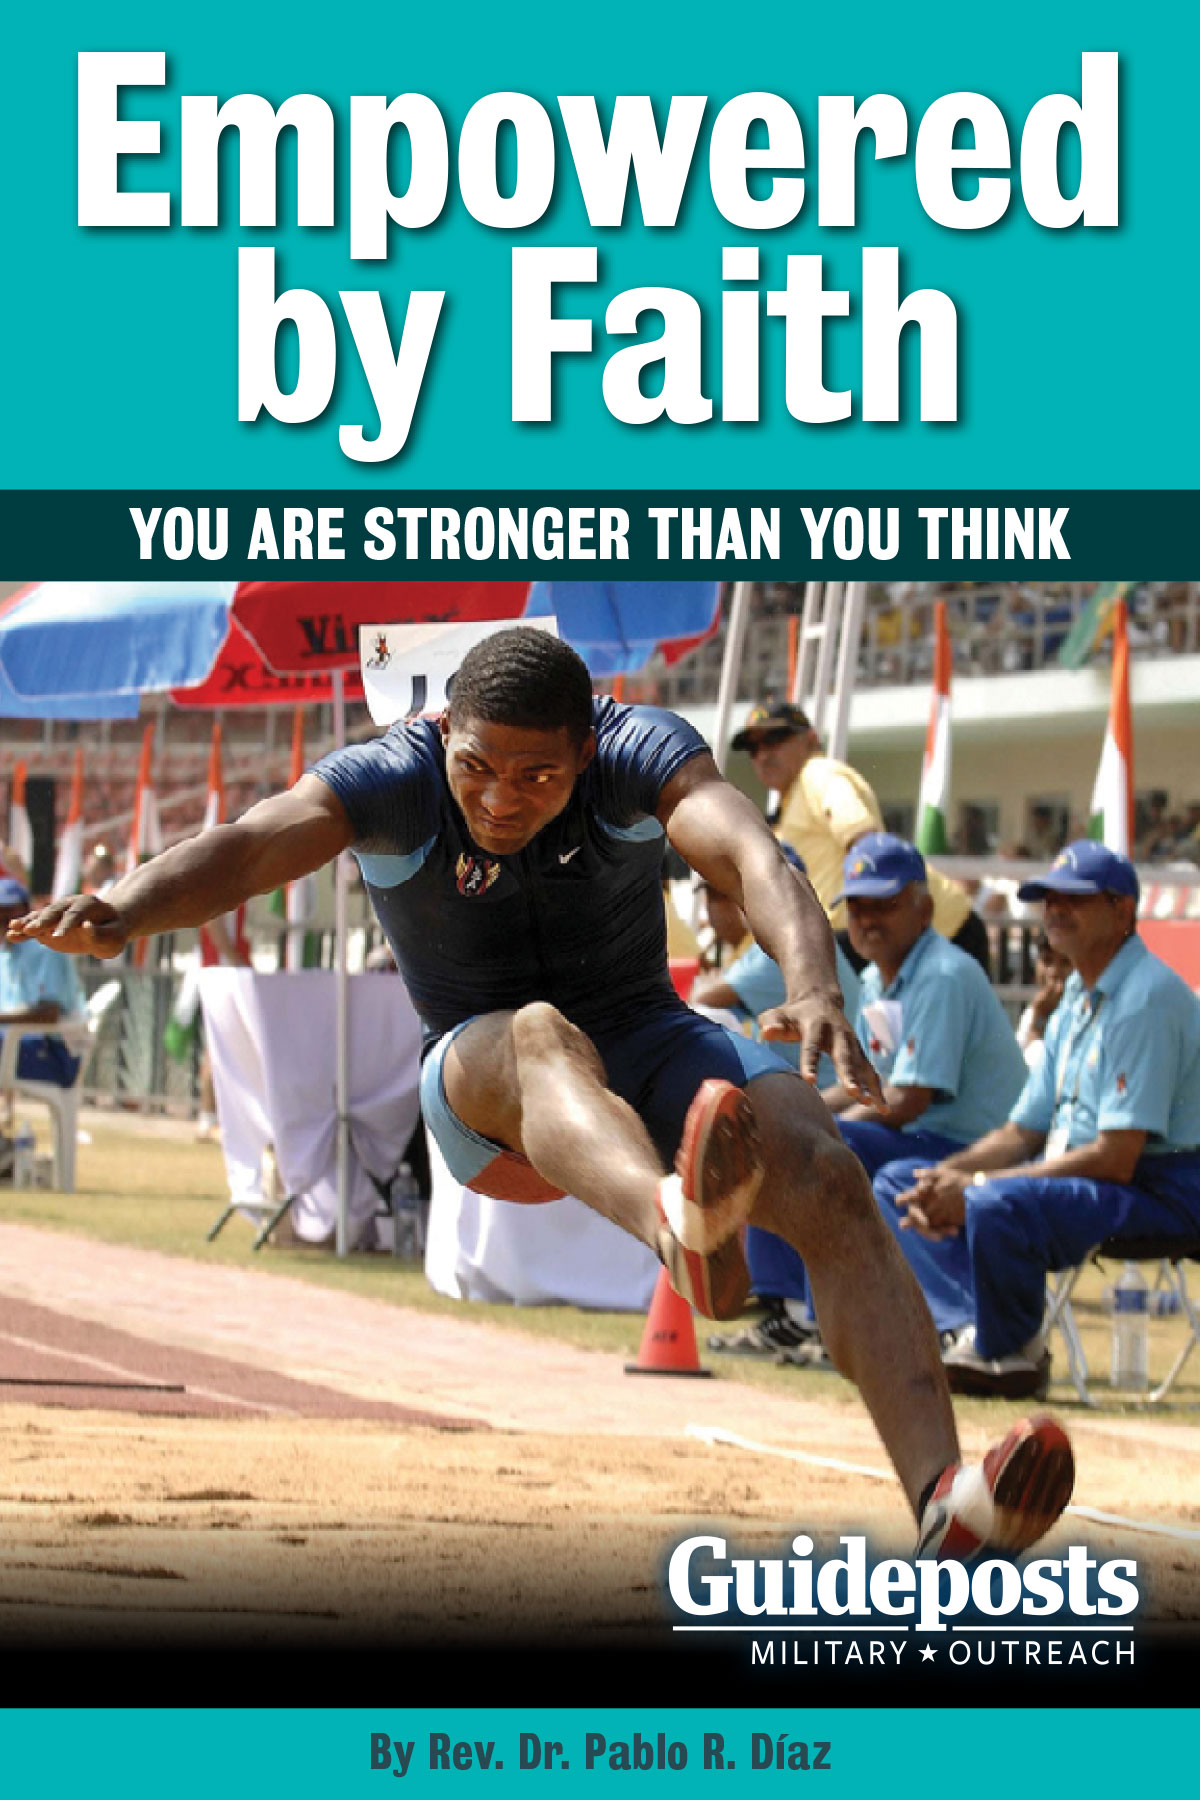 Empowered by Faith - Military